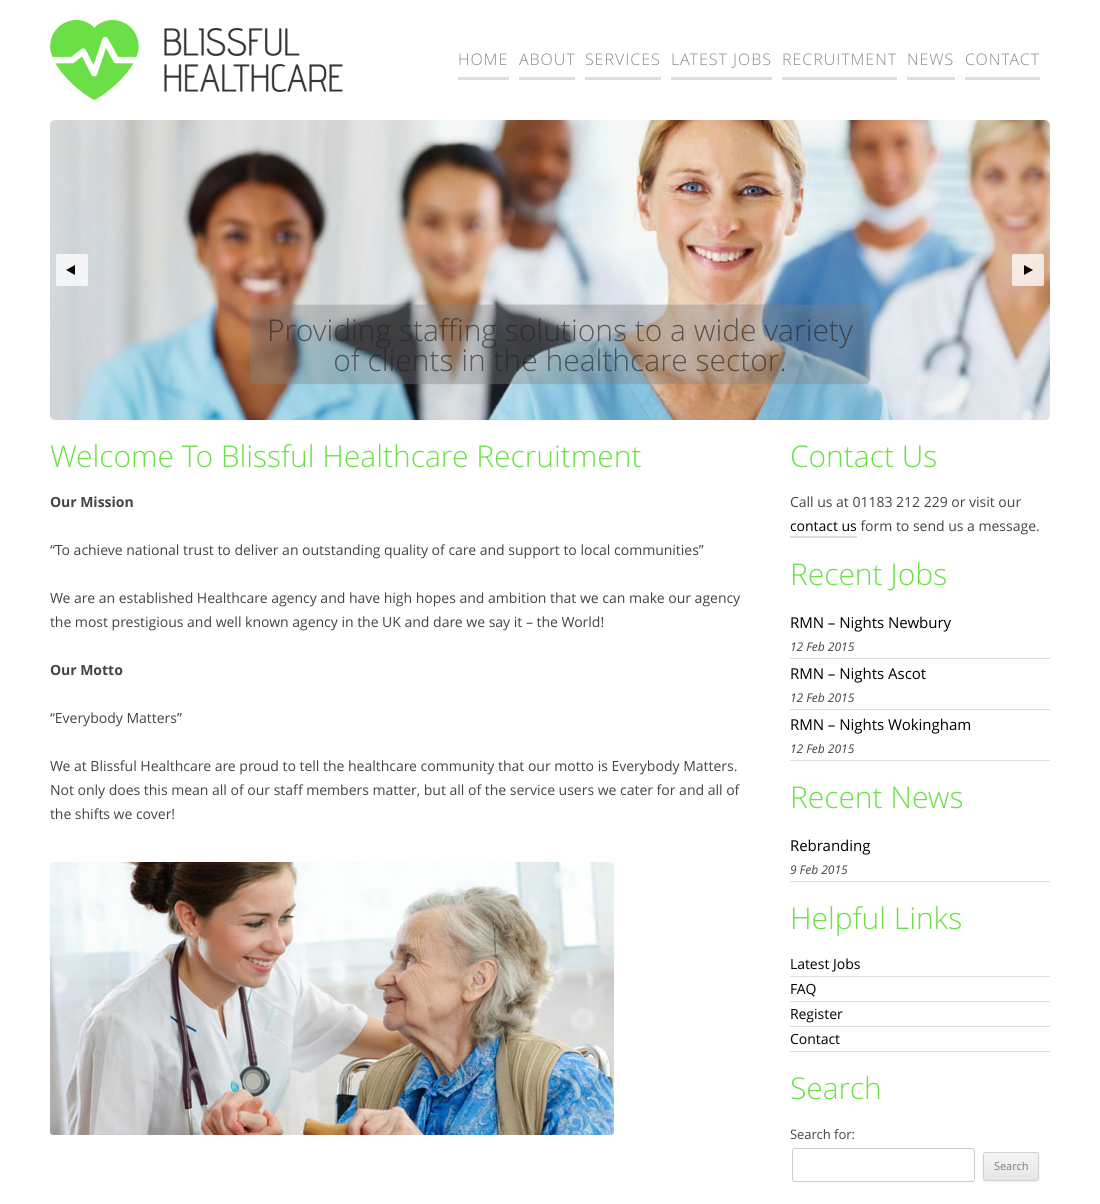 blissful healthcare recruitment website design